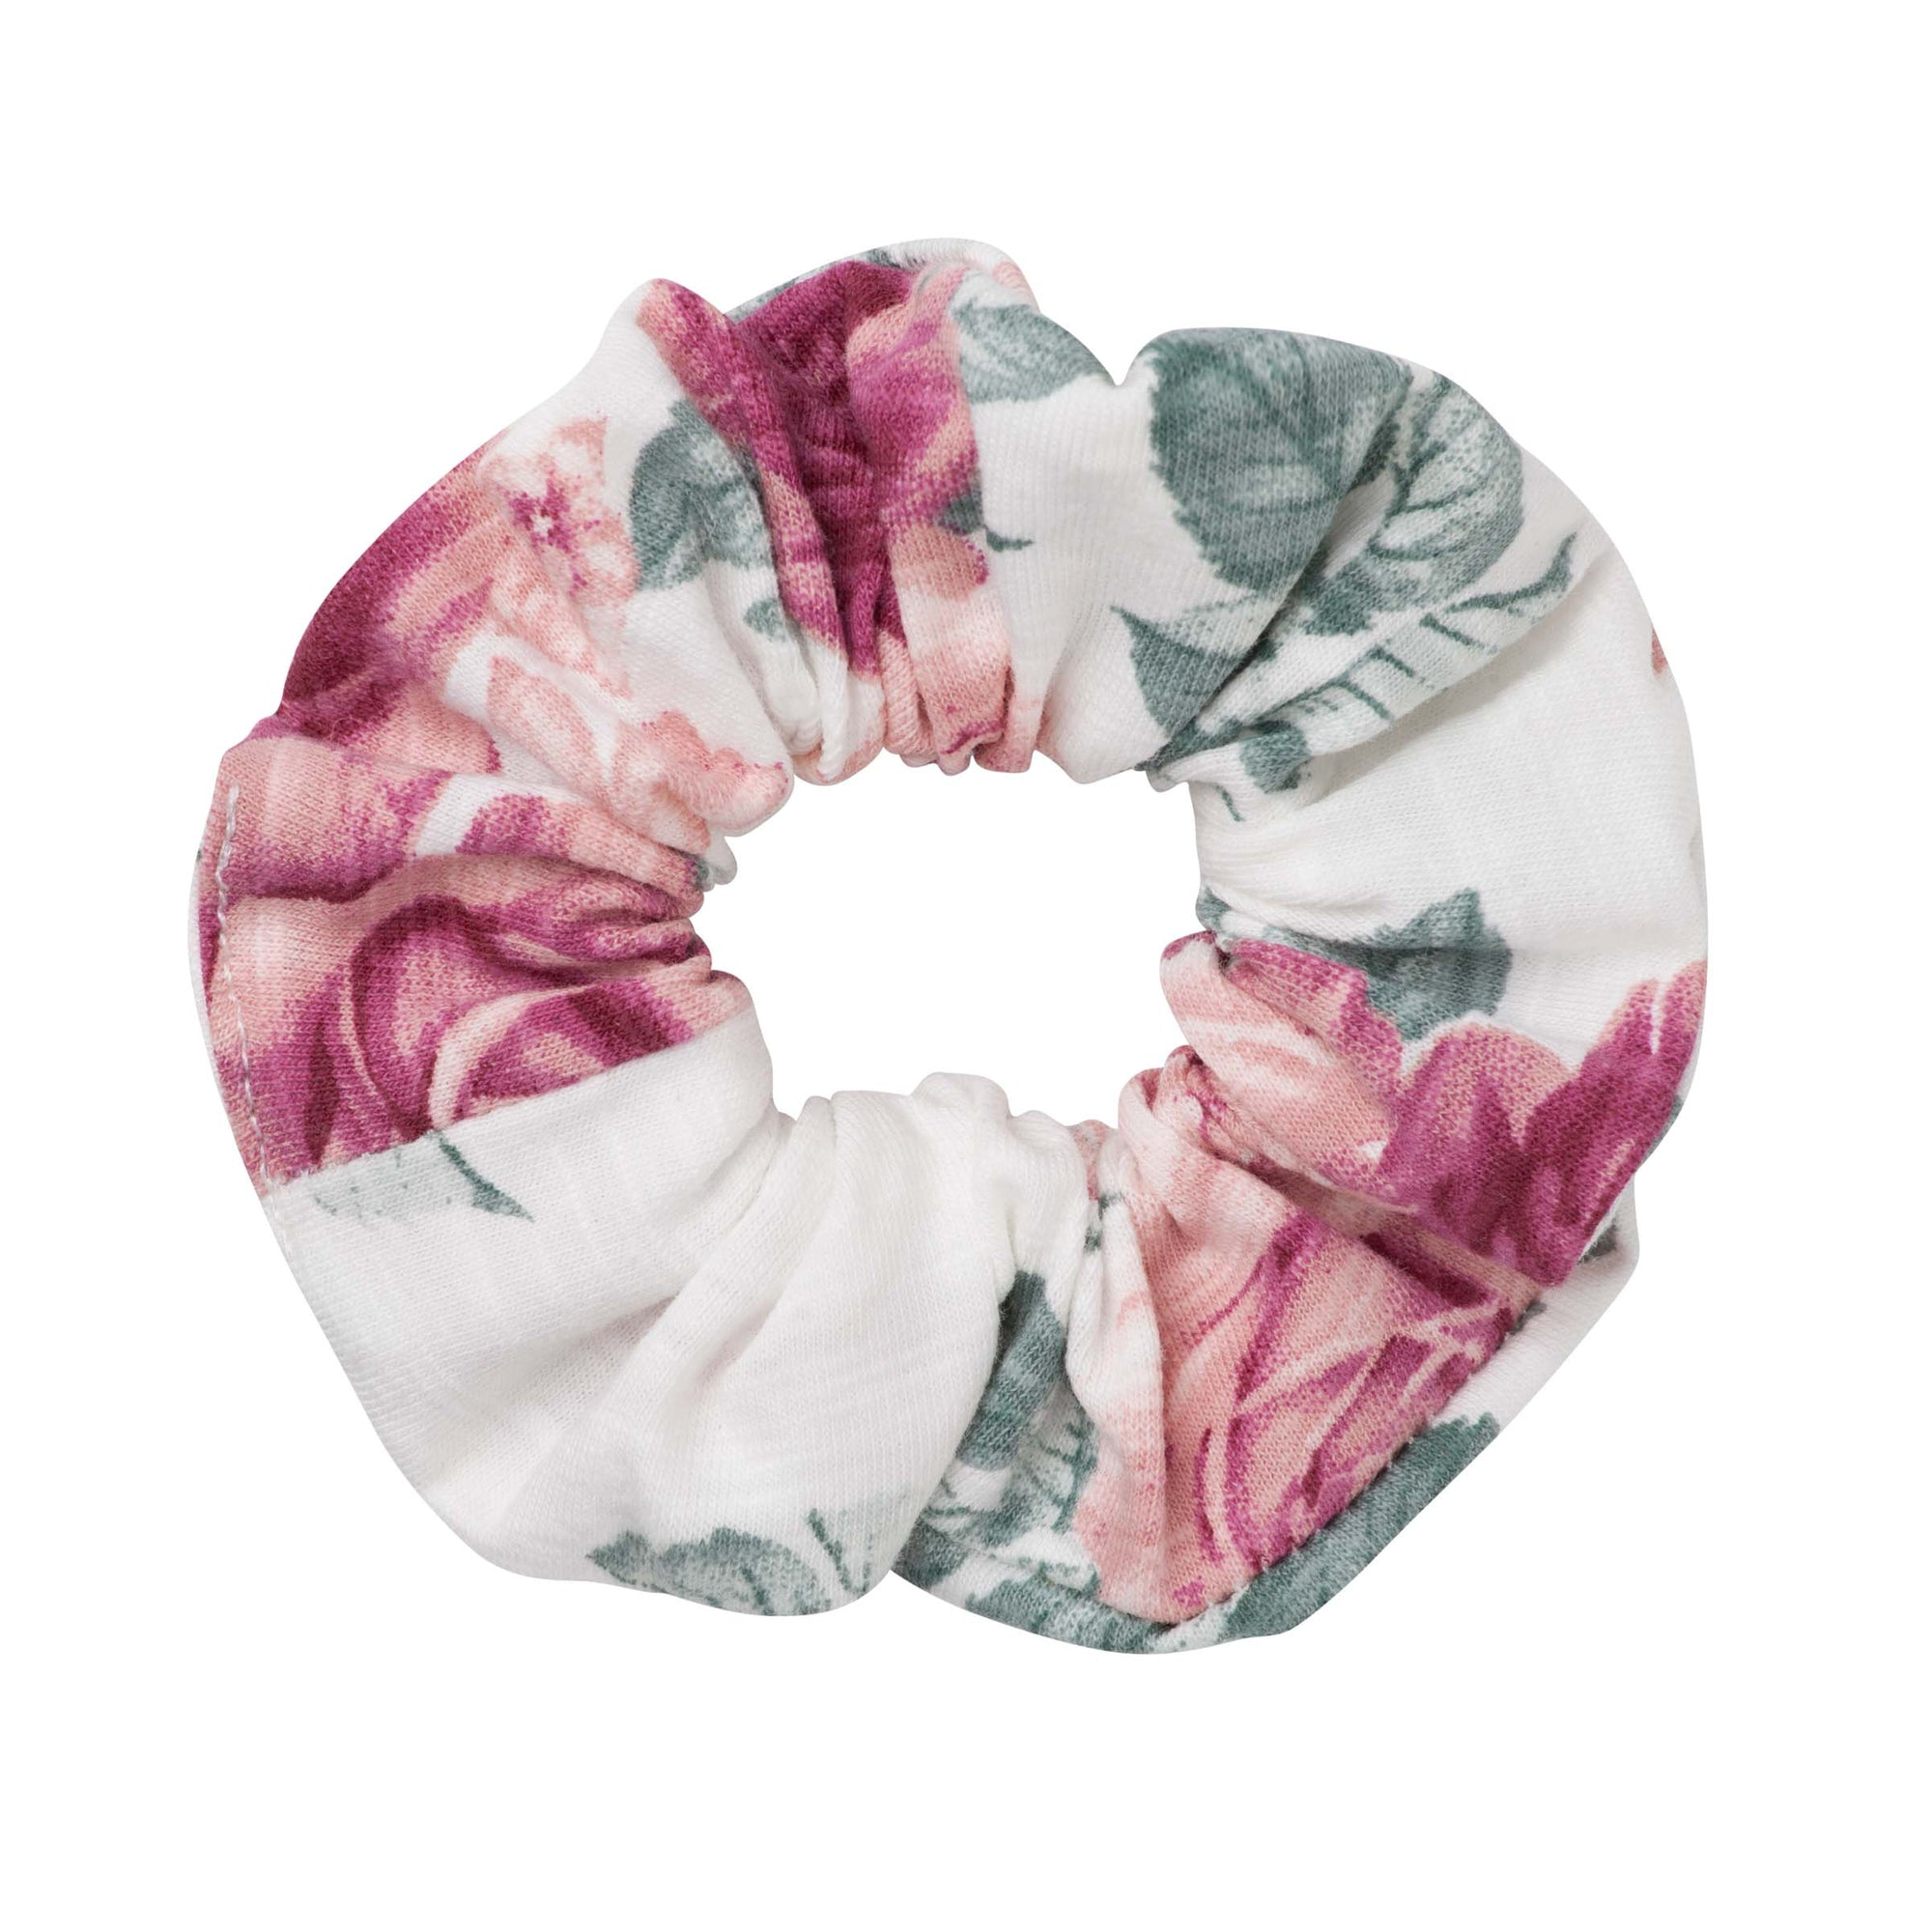 Buy Audrey Floral Scrunchie - Tea Rose - Designer Kidz | Special Occasions, Party Wear & Weddings  | Sizes 000-16 | Little Girls Party Dresses, Tutu Dresses, Flower Girl Dresses | Pay with Afterpay | Free AU Delivery Over $80